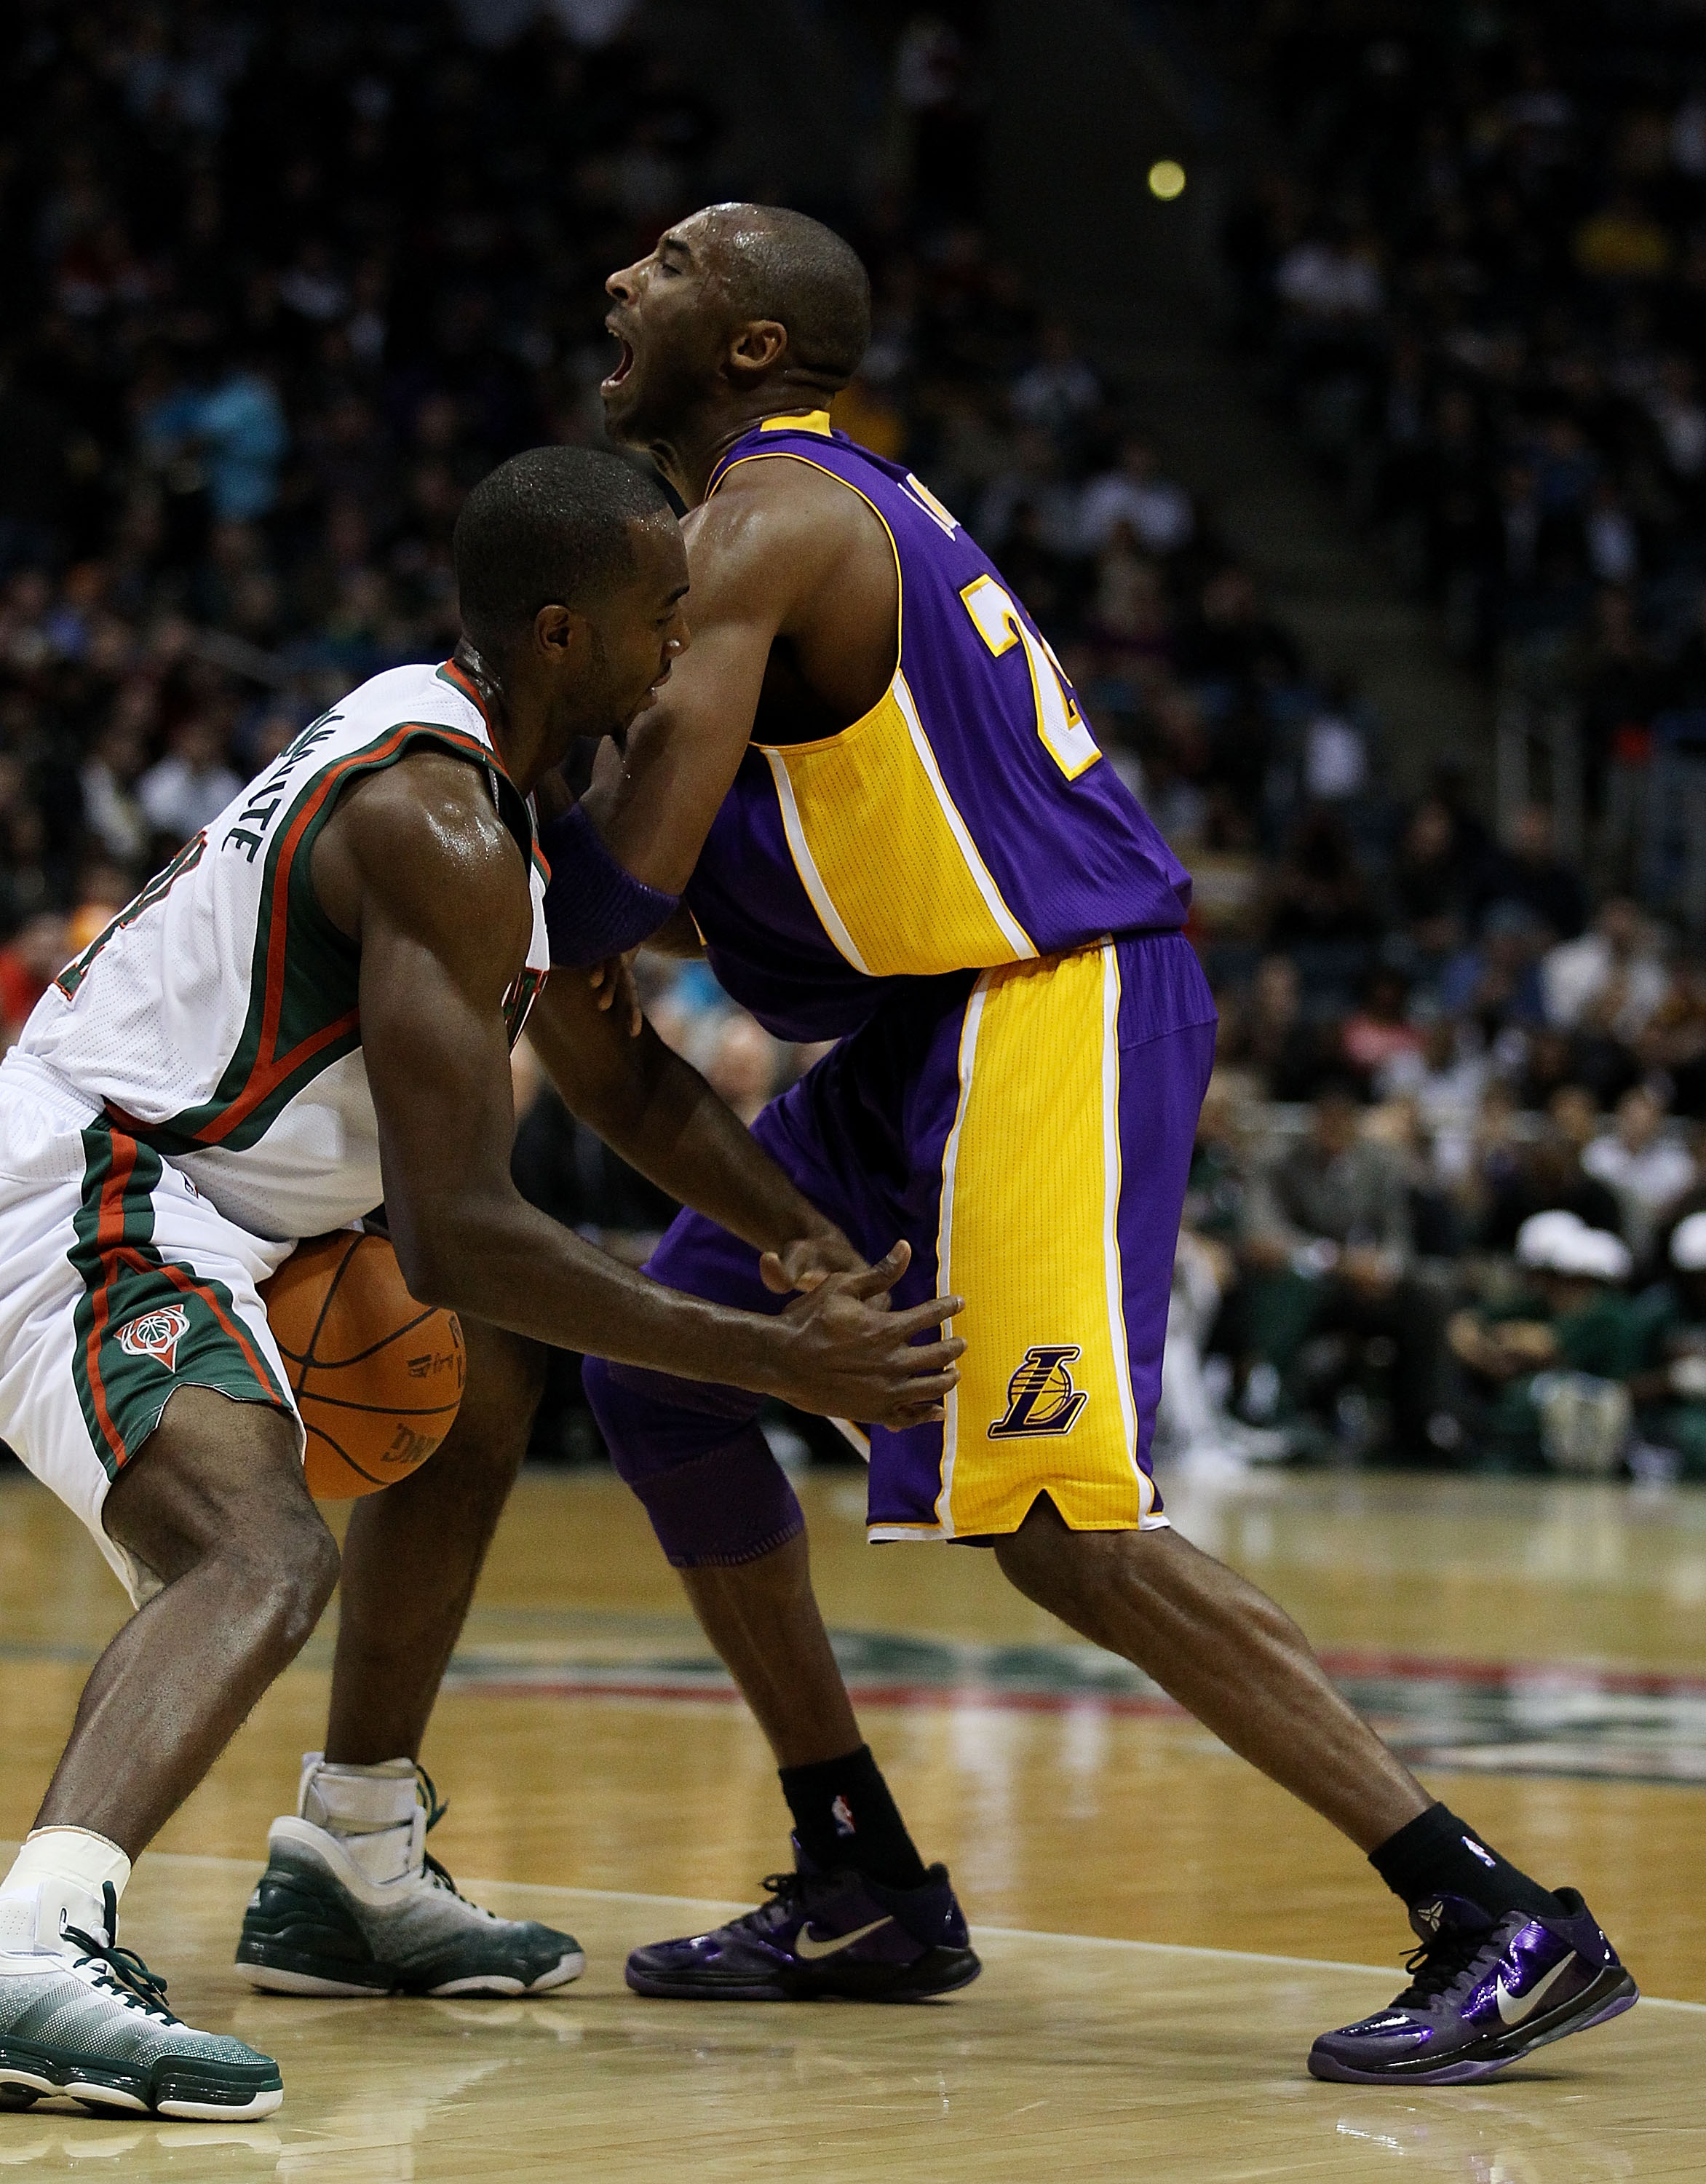 MILWAUKEE - NOVEMBER 16: Luc Richard Mbah a Moute #12 of the Milwaukee Bucks strips the ball from Kobe Bryant #24 of the Los Angeles Lakers at the Bradley Center on November 16, 2010 in Milwaukee, Wisconsin. NOTE TO USER: User expressly acknowledges and a